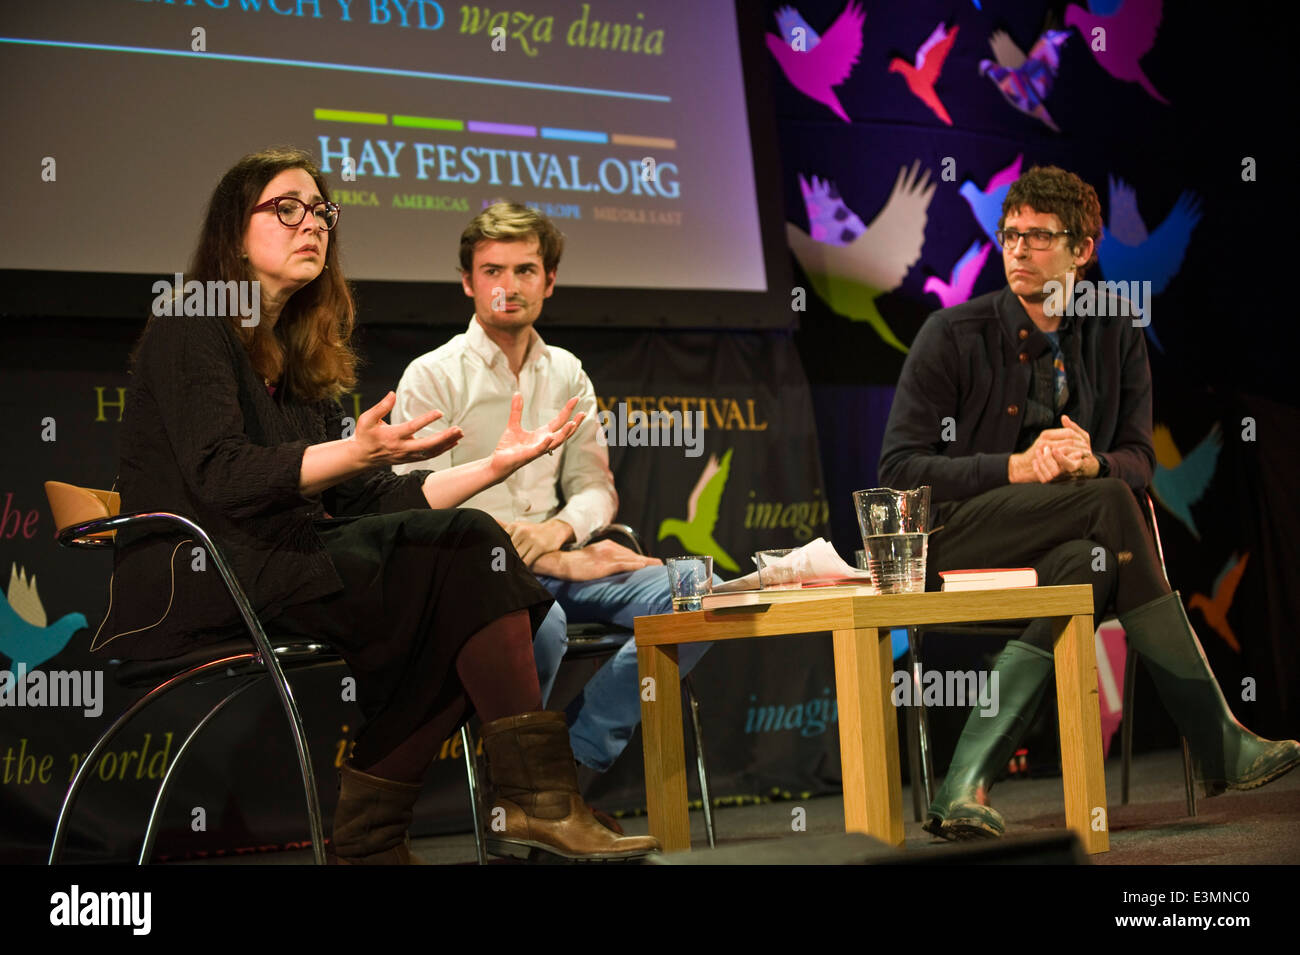 American authors Lorrie Moore (L) & Joshua Ferris (R) in discussion with Ted Hogkinson (C) at Hay Festival 2014 - Stock Image